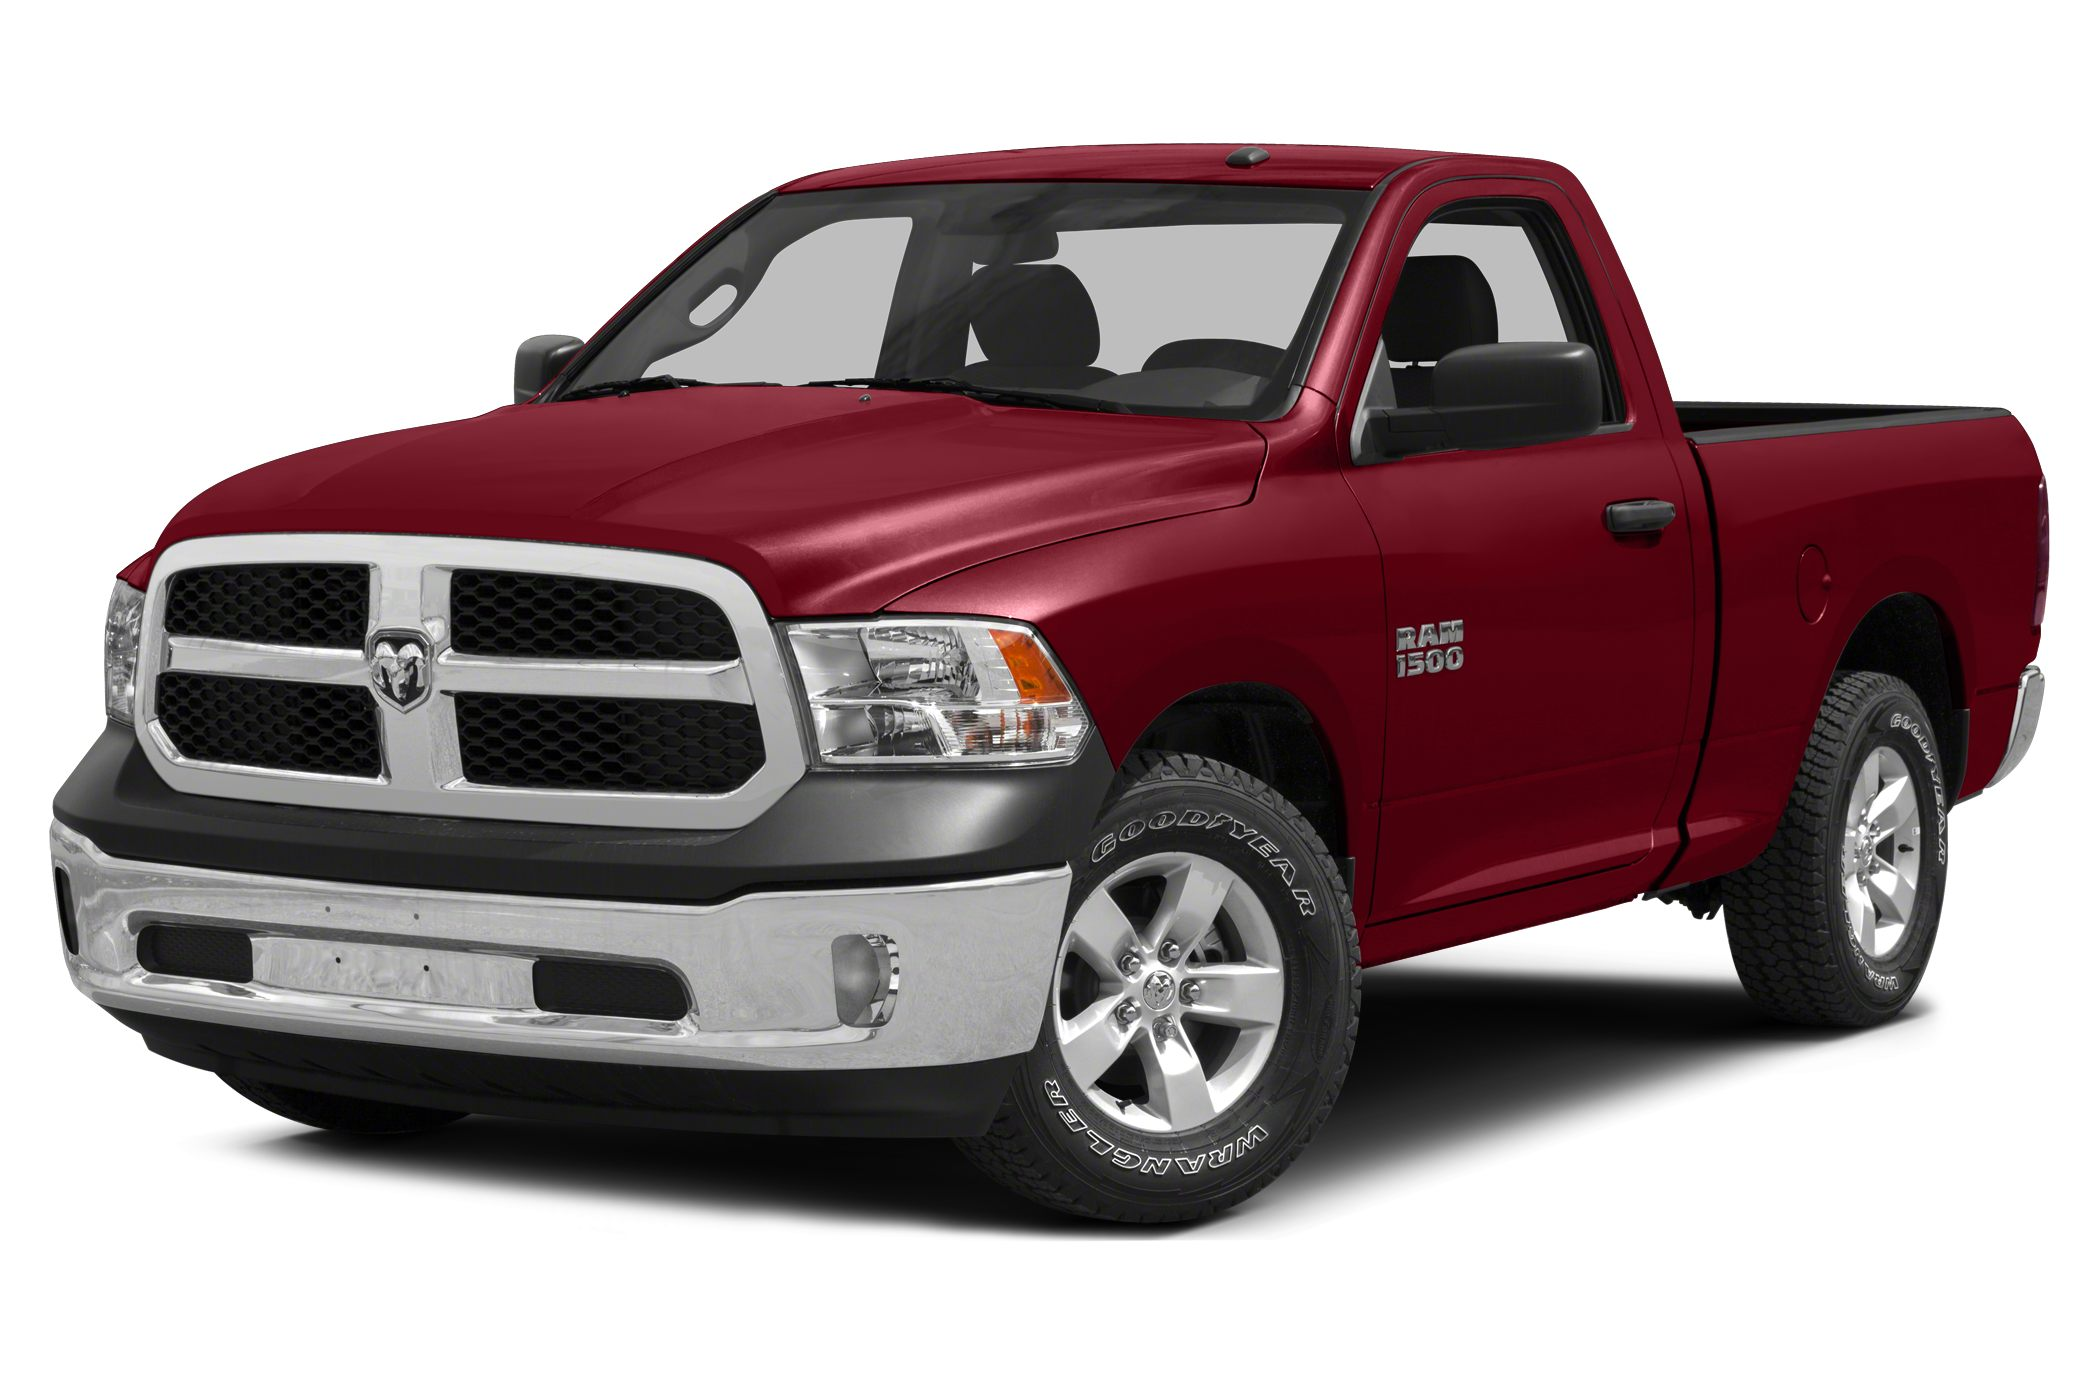 2015 RAM 1500 Tradesman/Express Crew Cab Pickup for sale in Carson City for $40,660 with 0 miles